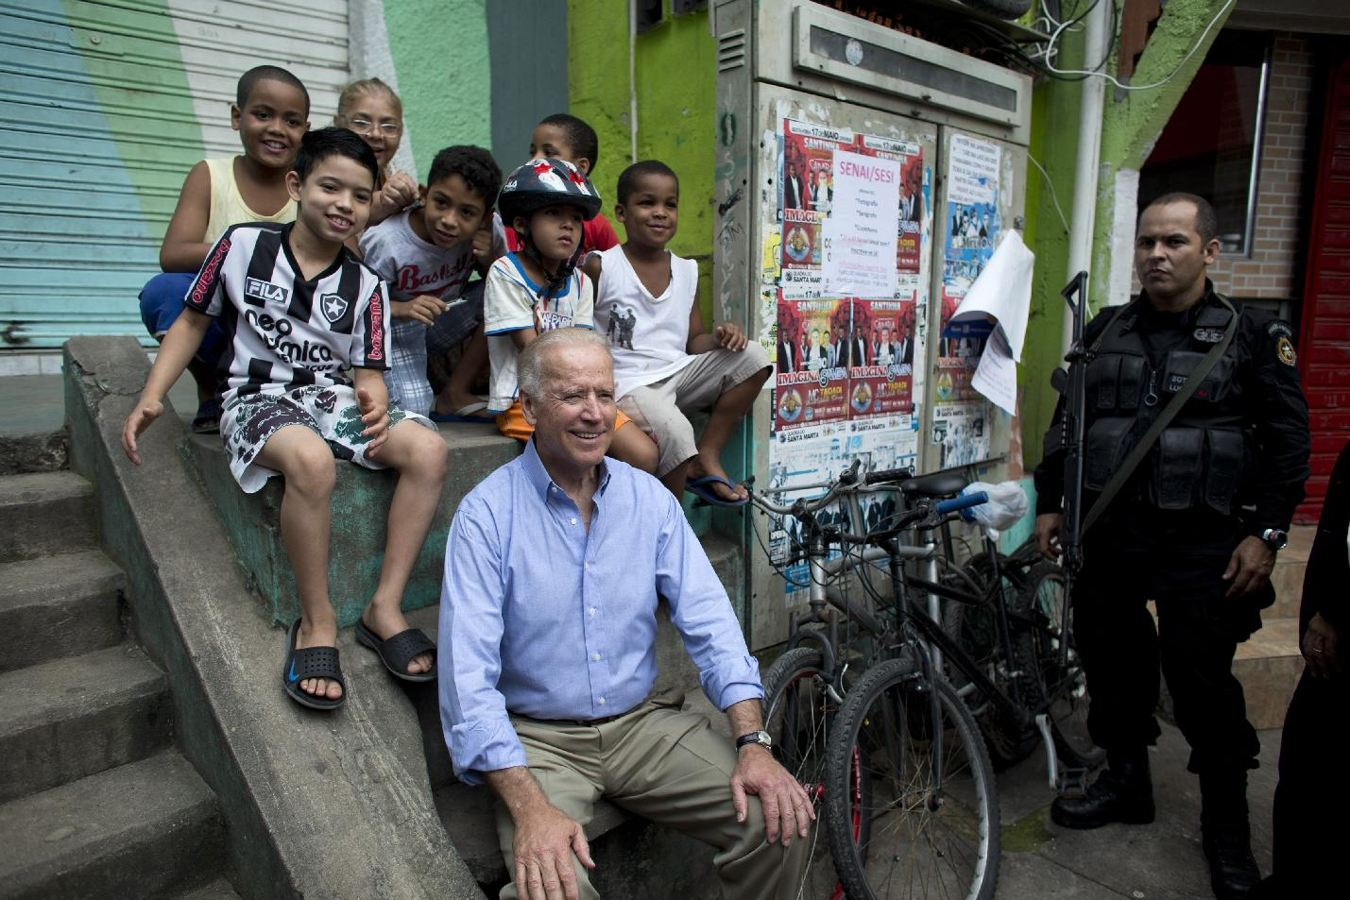 U.S. Vice President Joe Biden poses for photos with children as he tours the Santa Marta slum, as a special force police officer stands by in Rio de Janeiro, Brazil, Thursday, May 30, 2013. Biden met residents of the hillside slum in Rio's south zone during a 30-minute visit. (AP Photo/Victor R. Caivano